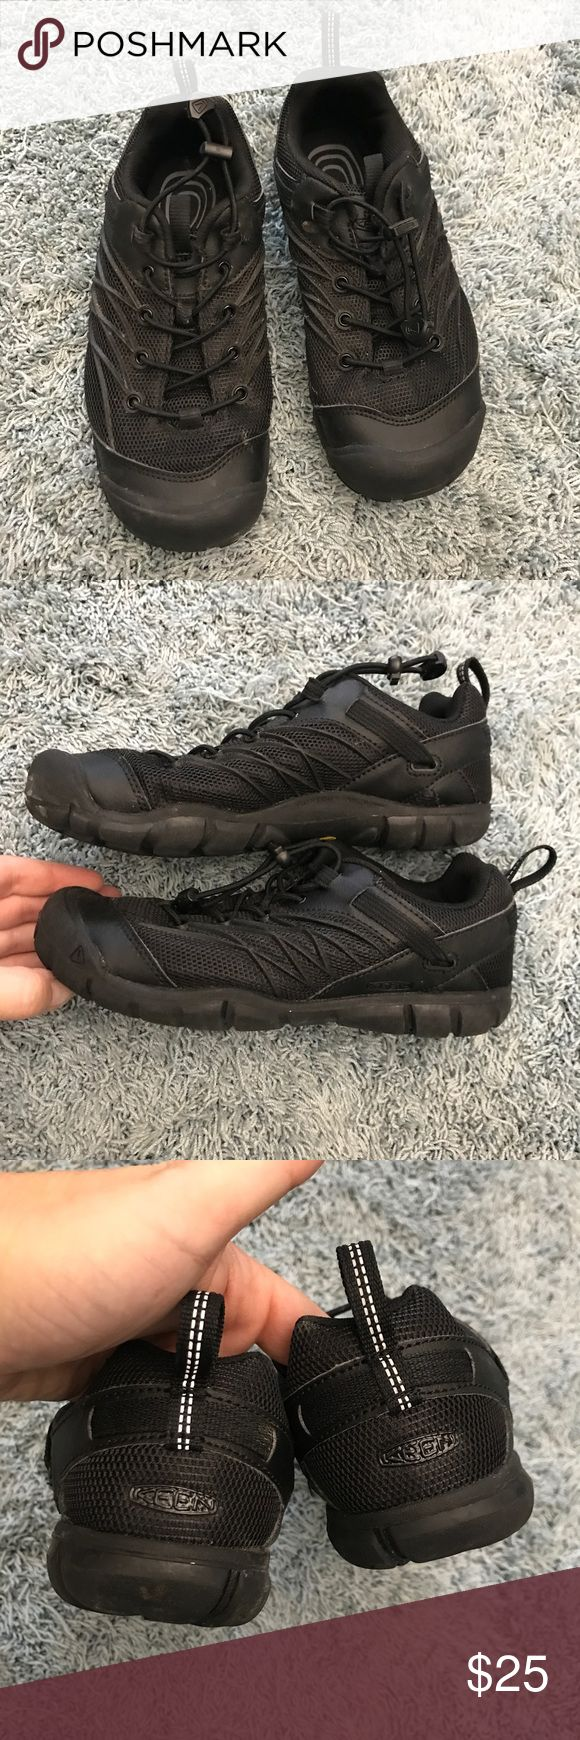 Boys Keens Chandler CNX Shoe, 4 Excellent, like new condition boys CNX Keens. Only worn a few times. Color is black, size 4. No rips, stains or tears. Non smoking home. Keen Shoes Sneakers